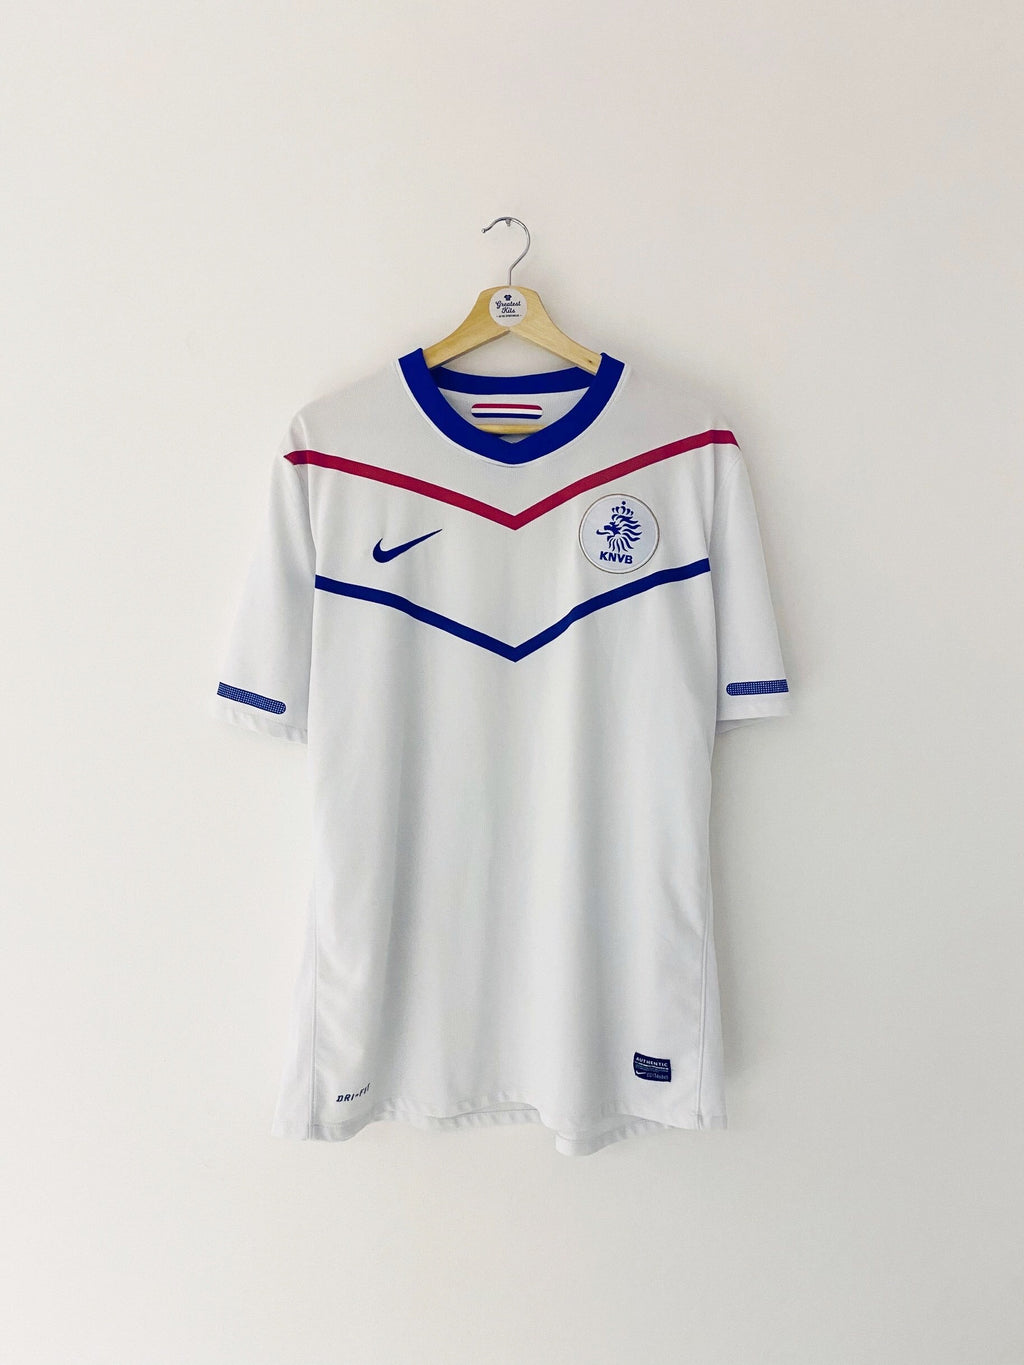 2010/11 Holland Away Shirt (XL) 9/10